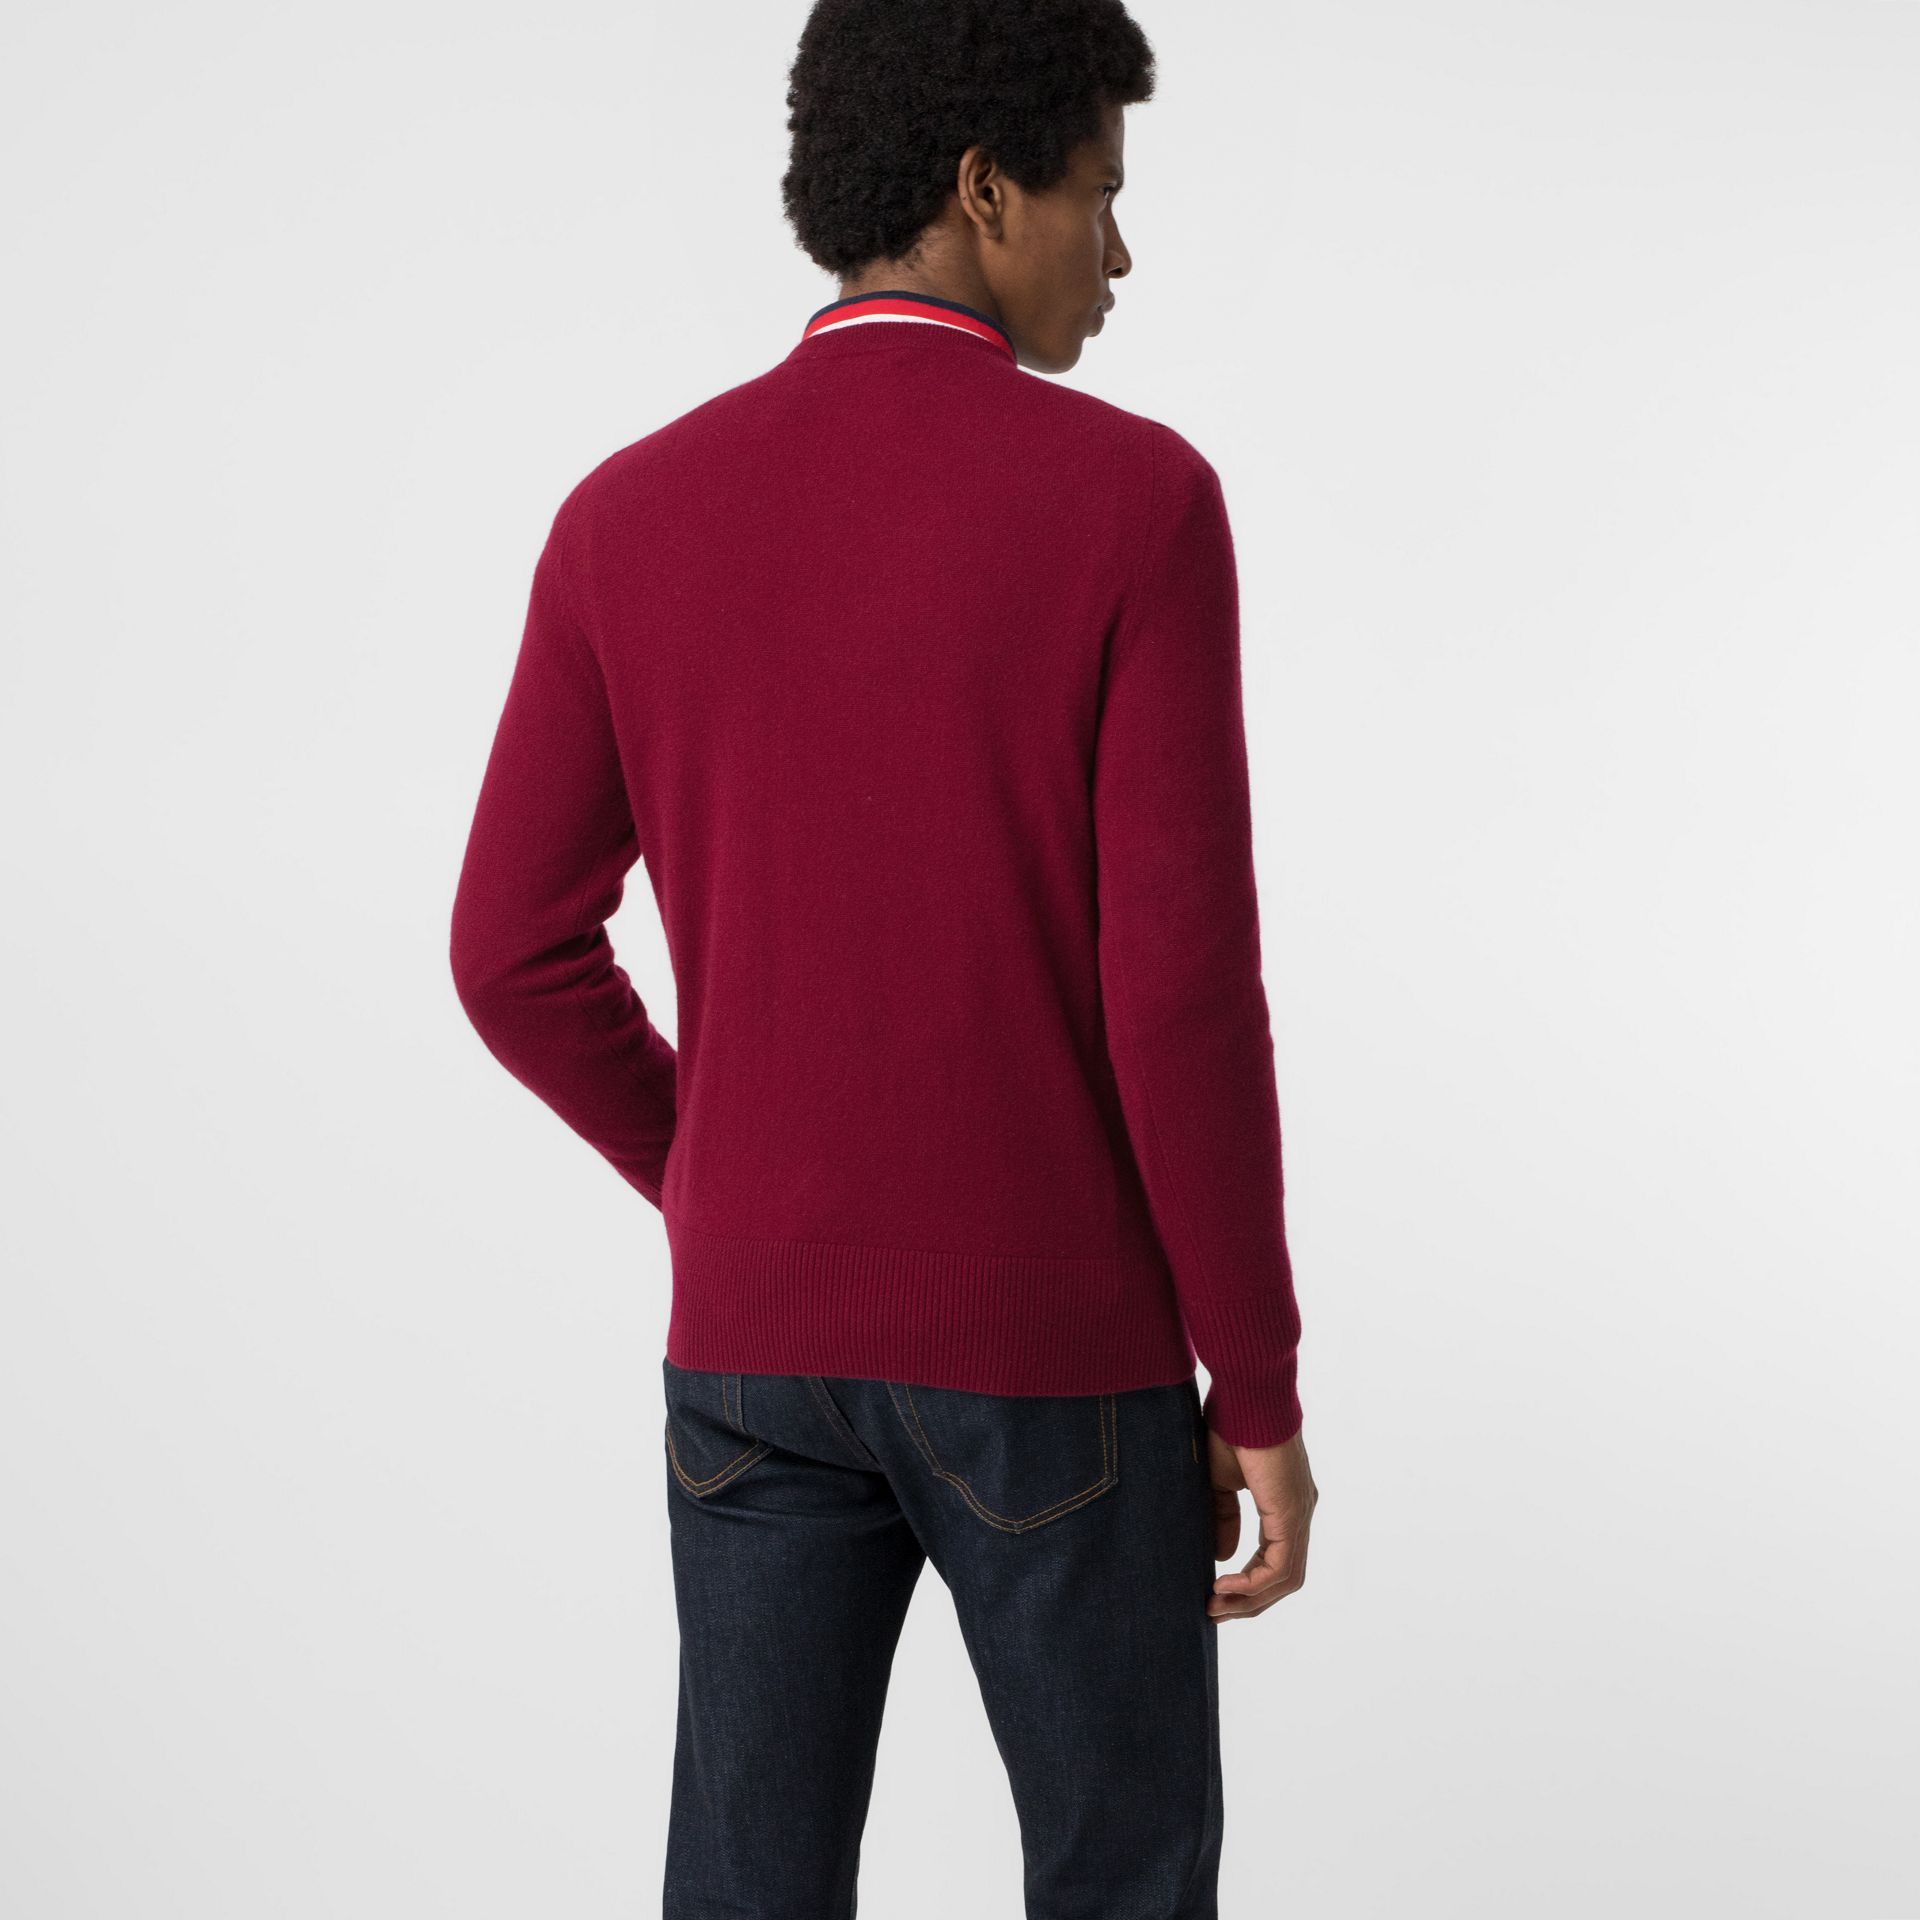 Embroidered Logo Cashmere Sweater in Claret - Men | Burberry Hong Kong - gallery image 2